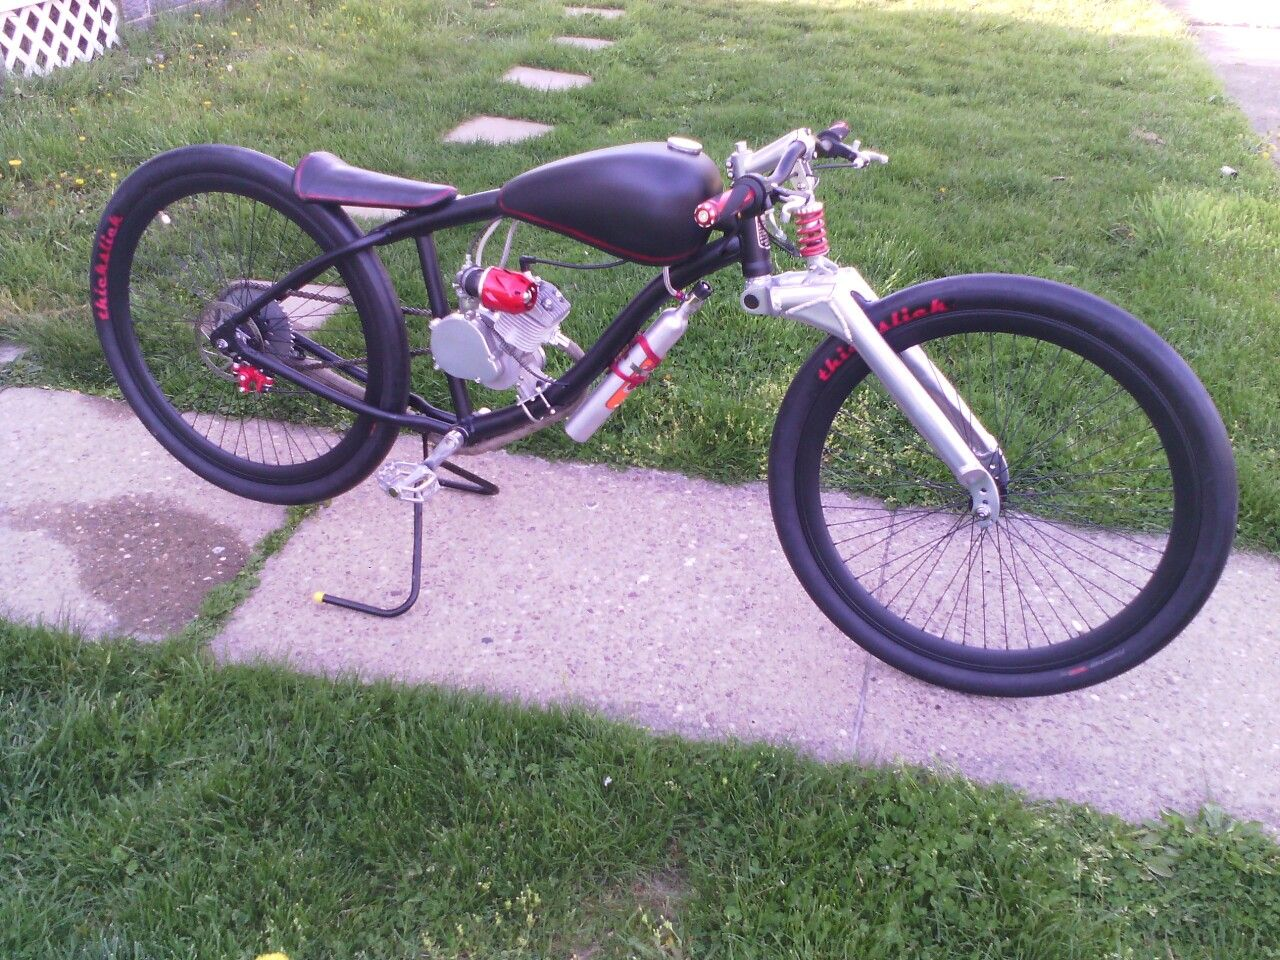 80cc fun built out of scrap parts | motorized bicycle